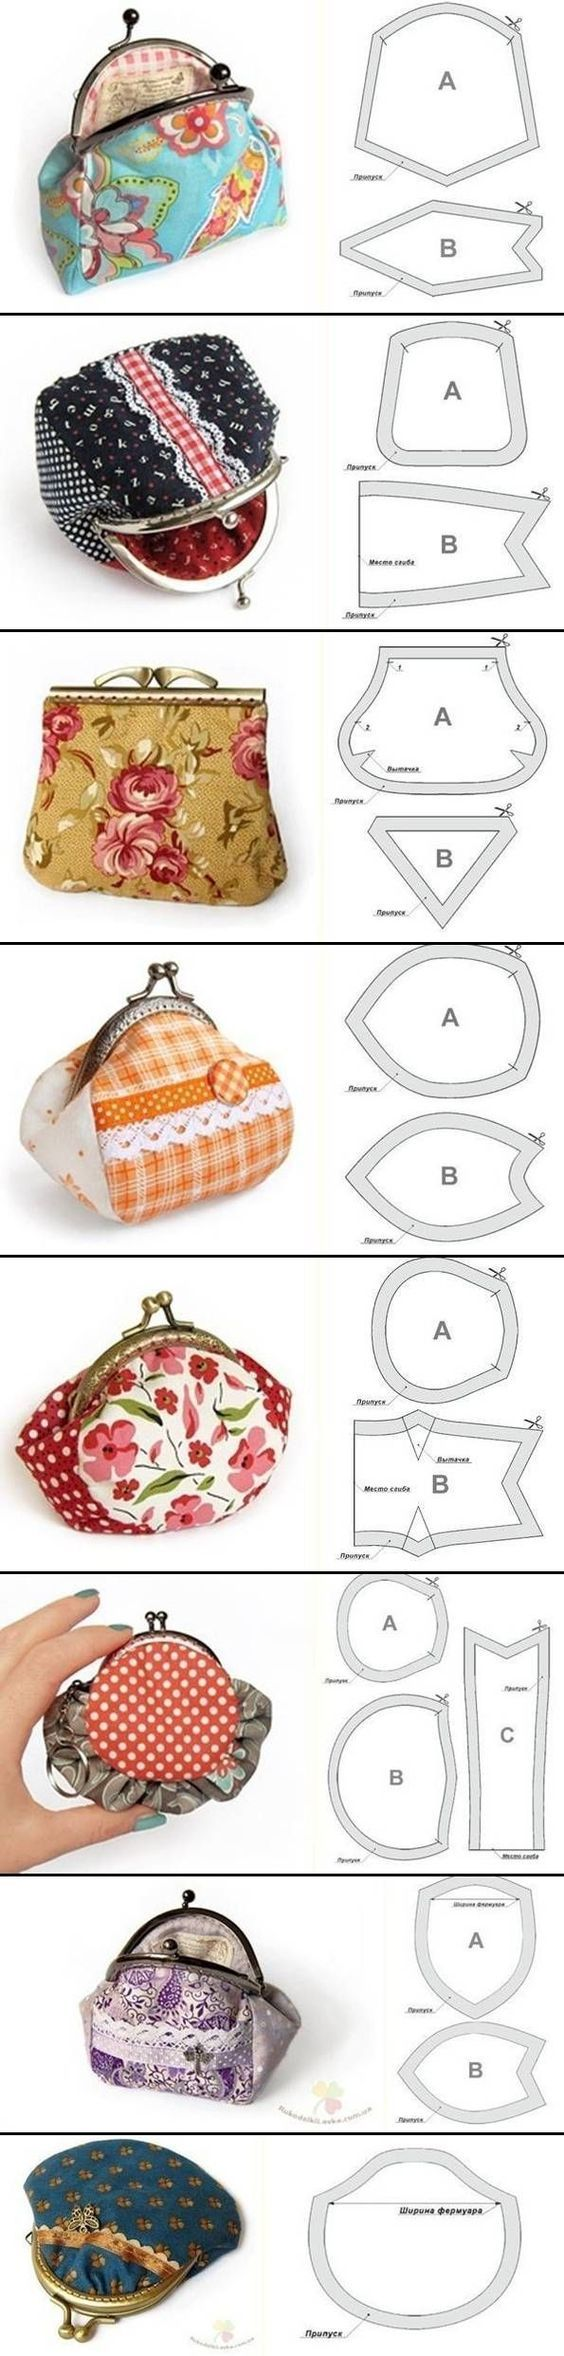 Cute Purse Templates: